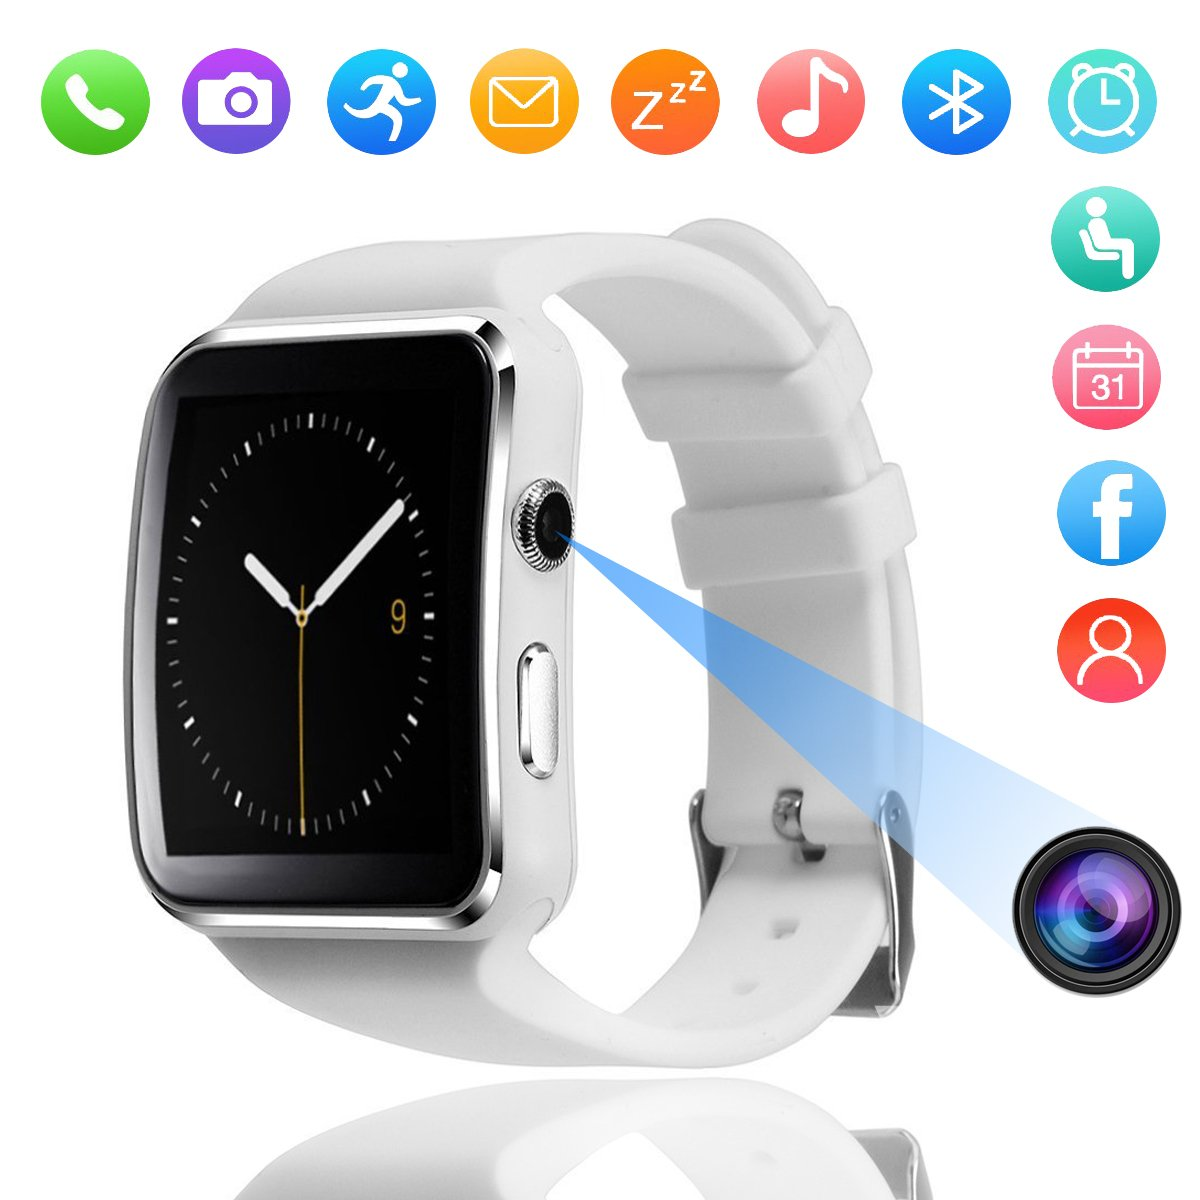 Bluetooth Smart Watch, DMDG Touch Screen Smartwatches with Camera Unlocked Smart Watches Cell Phone SIM Card Slot, Wrist Watch for Kids/Boys/Girls/Elder/Men/Women (White) by DMDG